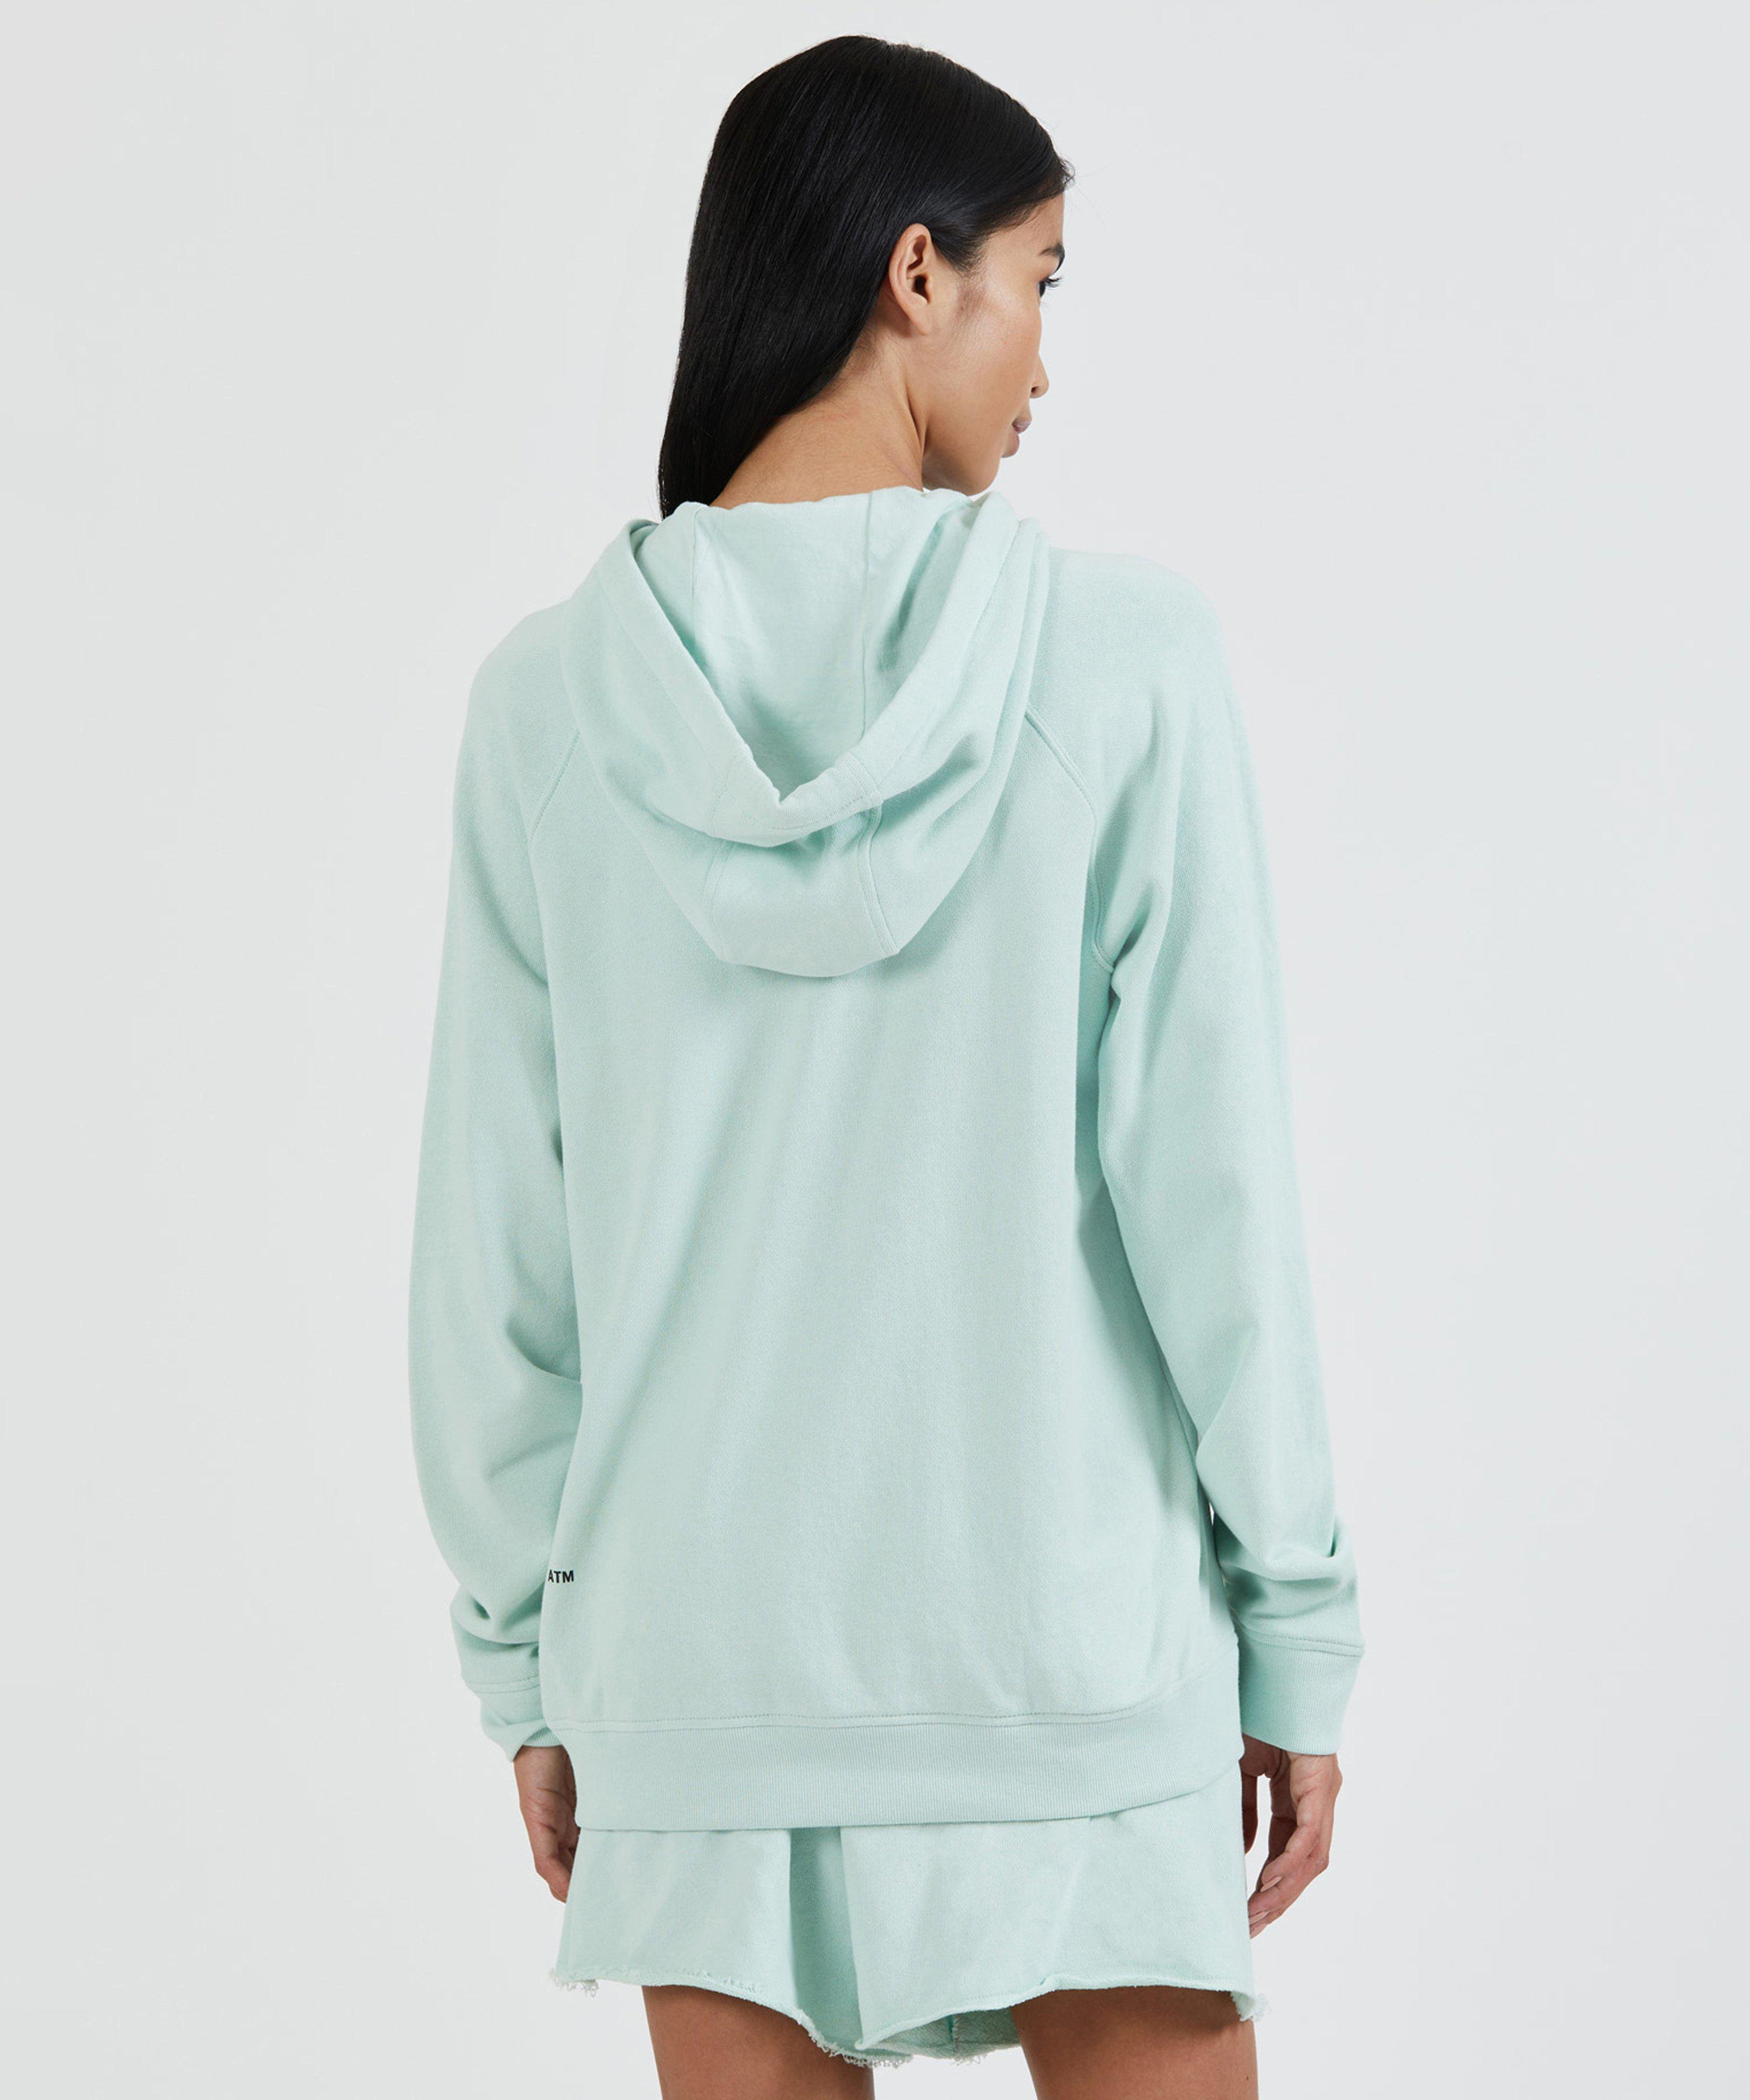 French Terry Pull-Over Hoodie - Mint 1